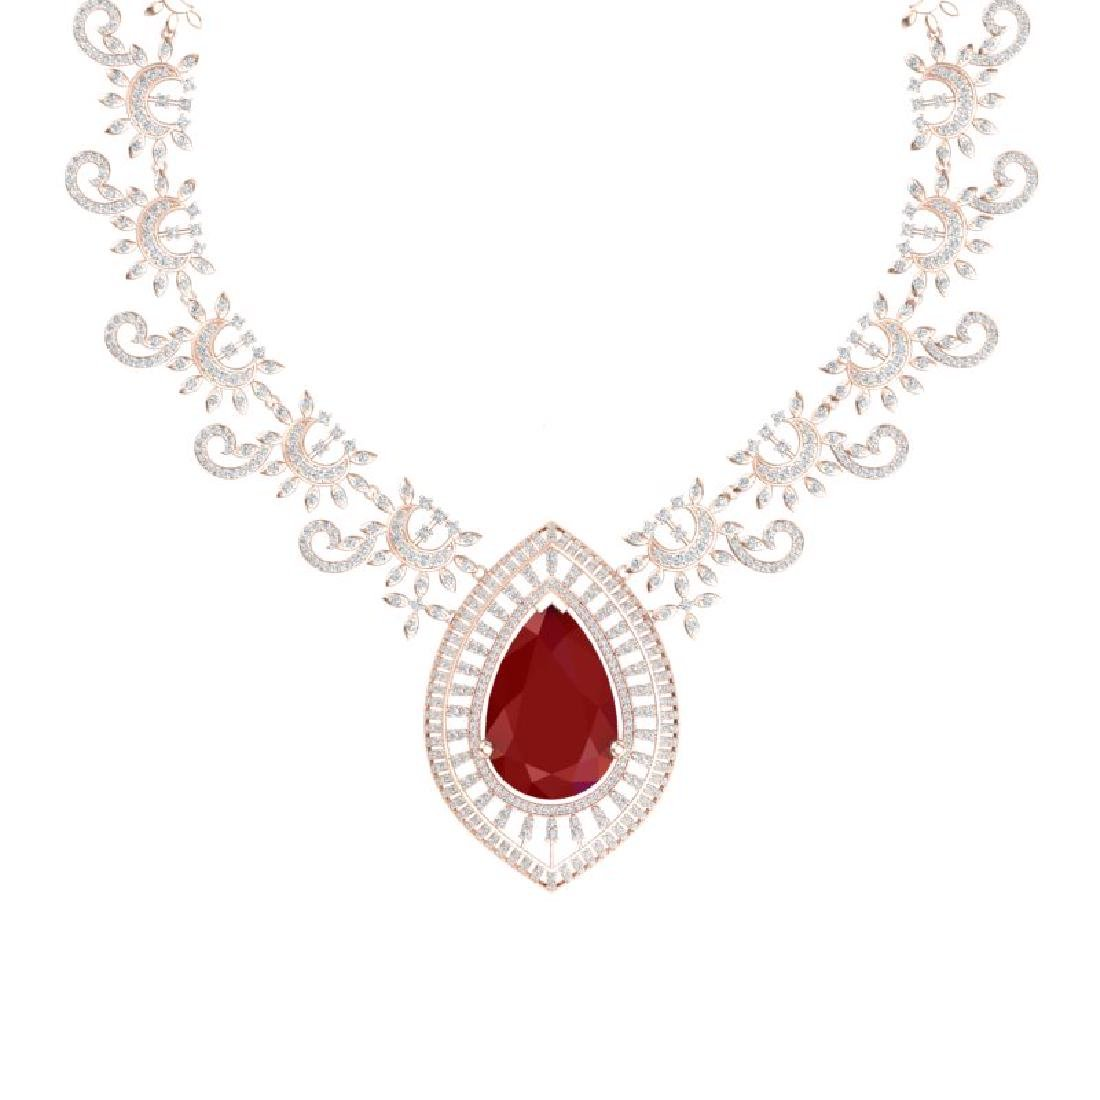 65.75 CTW Royalty Ruby & VS Diamond Necklace 18K Rose - 2